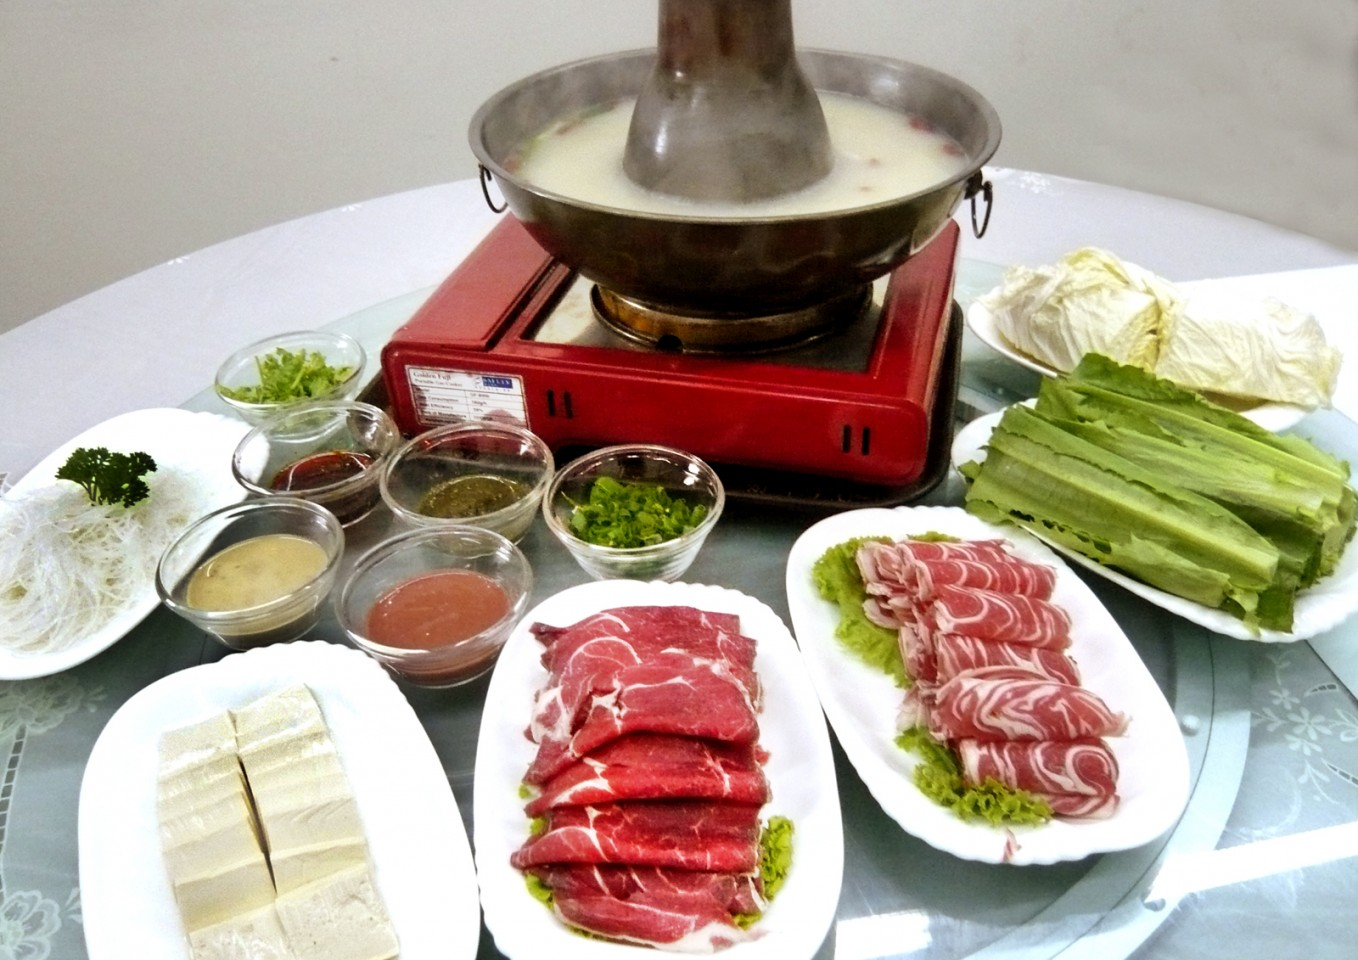 Have for yourself a hearty meal of instant-boiled mutton. (SPH)